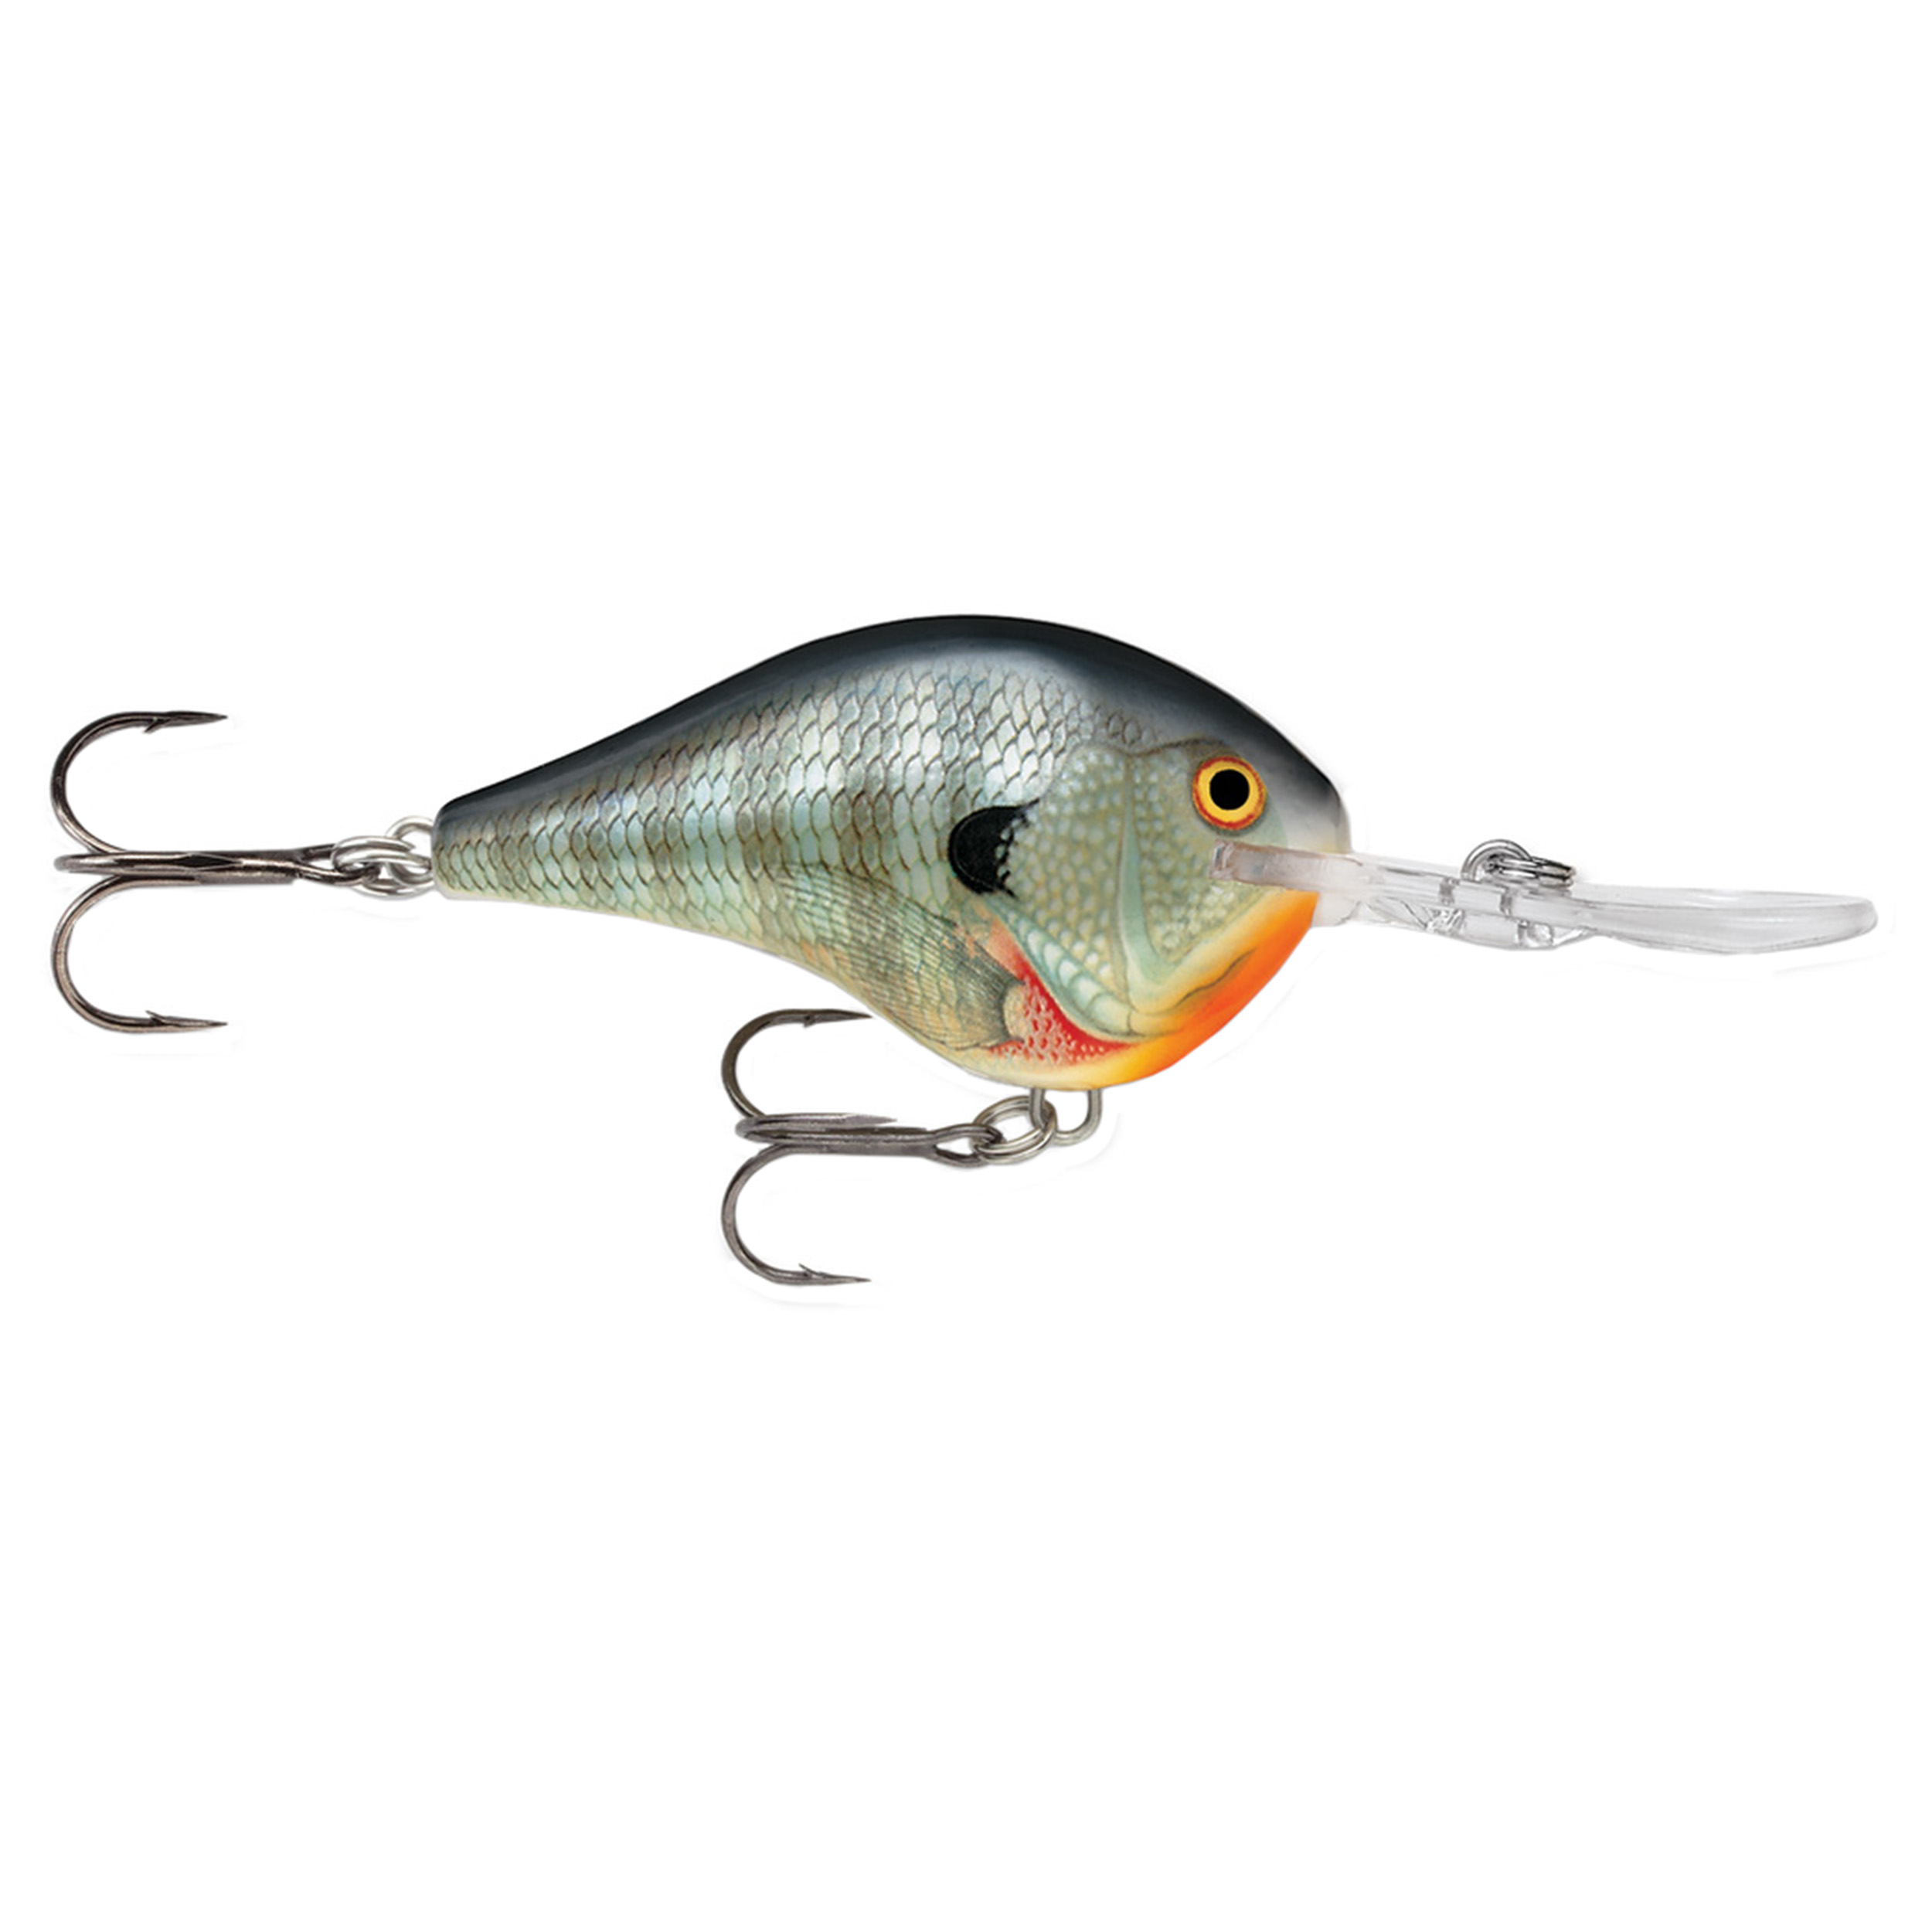 "Rapala Dives-To Series Custom Ink Lure Size 06, 2"" Length, 6' Depth, 2 Number 5 Treble Hooks, Bluegill, Per 1 by Rapala"